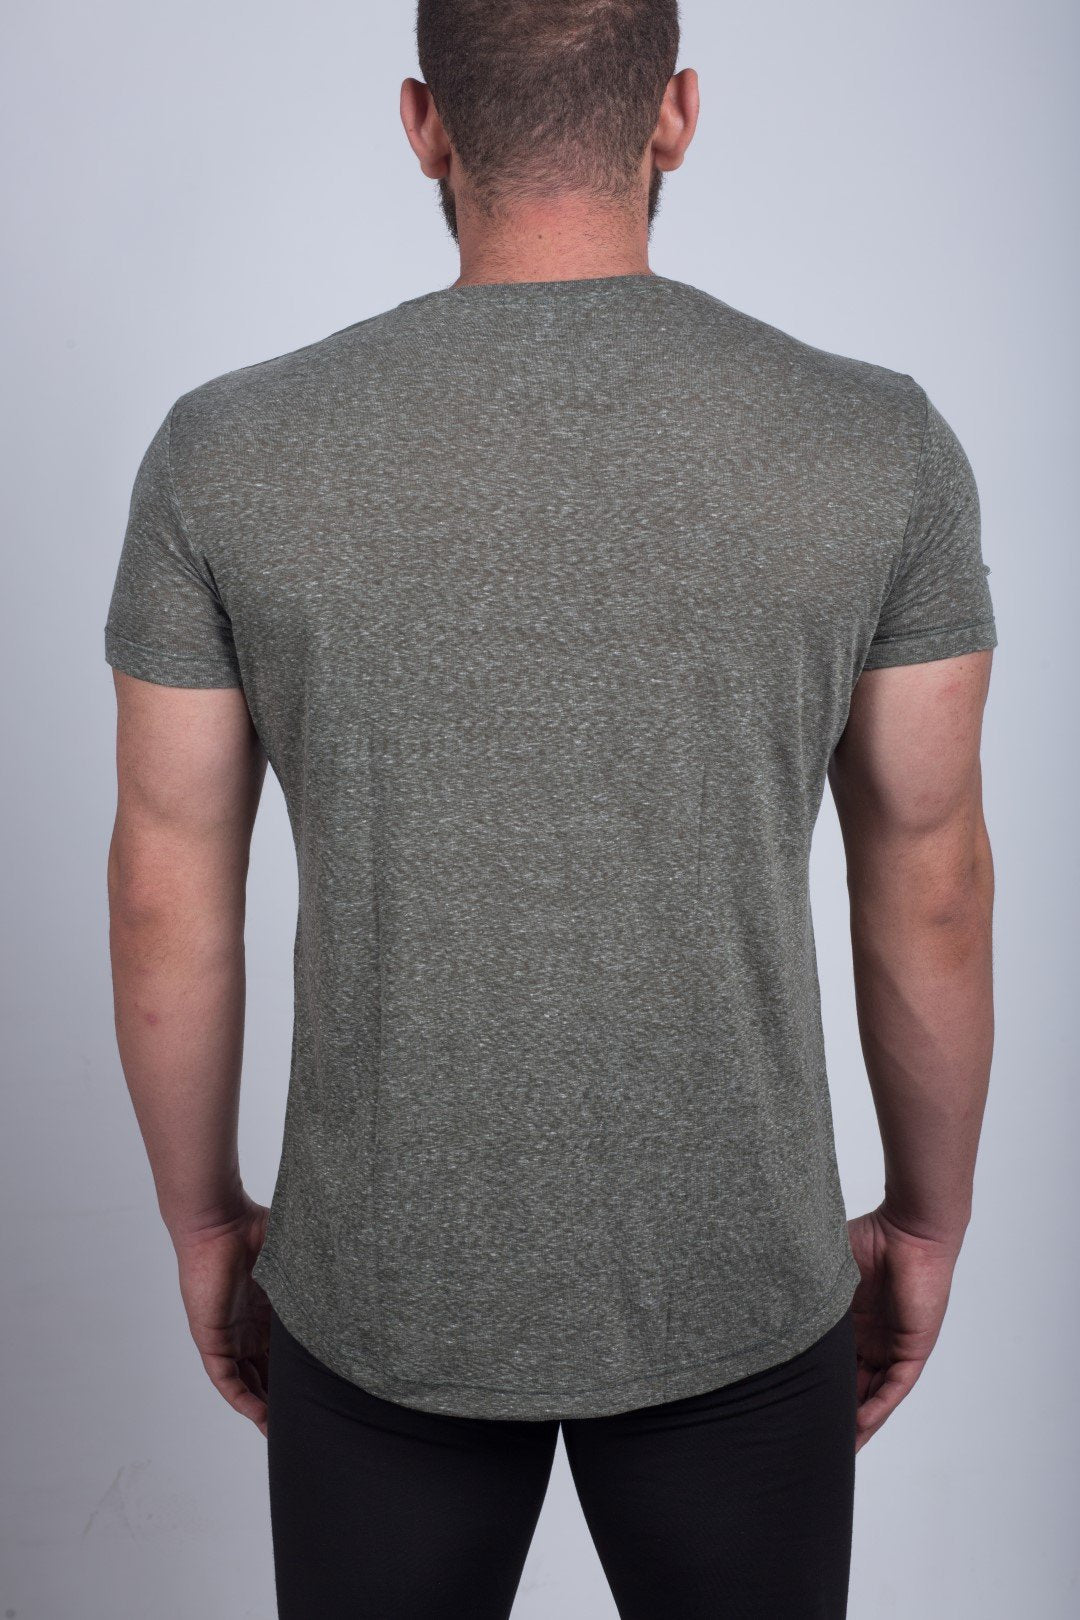 MEN'S ROUND-NECK T-SHIRT(OLIVE GREEN) - Sigma Fit US